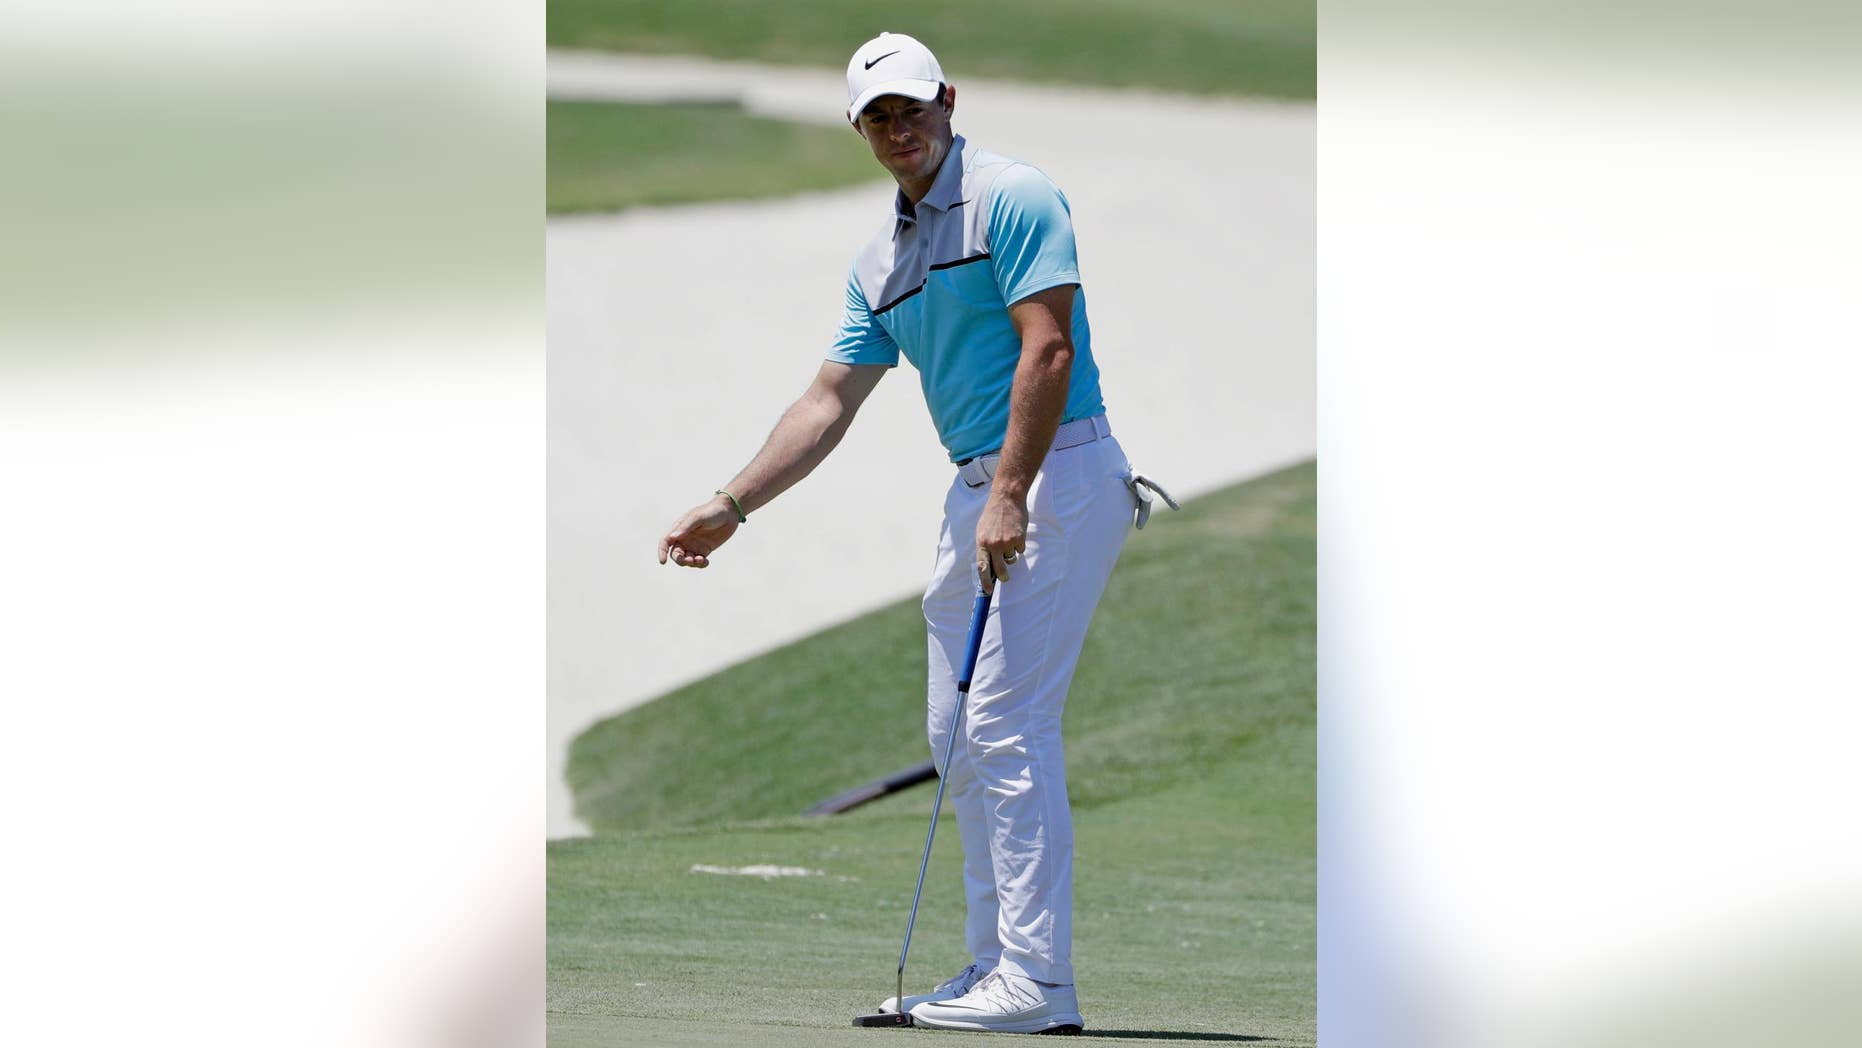 Rory McIlroy, of Northern Ireland, gestures after missing a birdie putt on the seventh green during the second round of The Players Championship golf tournament Friday, May 12, 2017, in Ponte Vedra Beach, Fla. (AP Photo/Chris O'Meara)